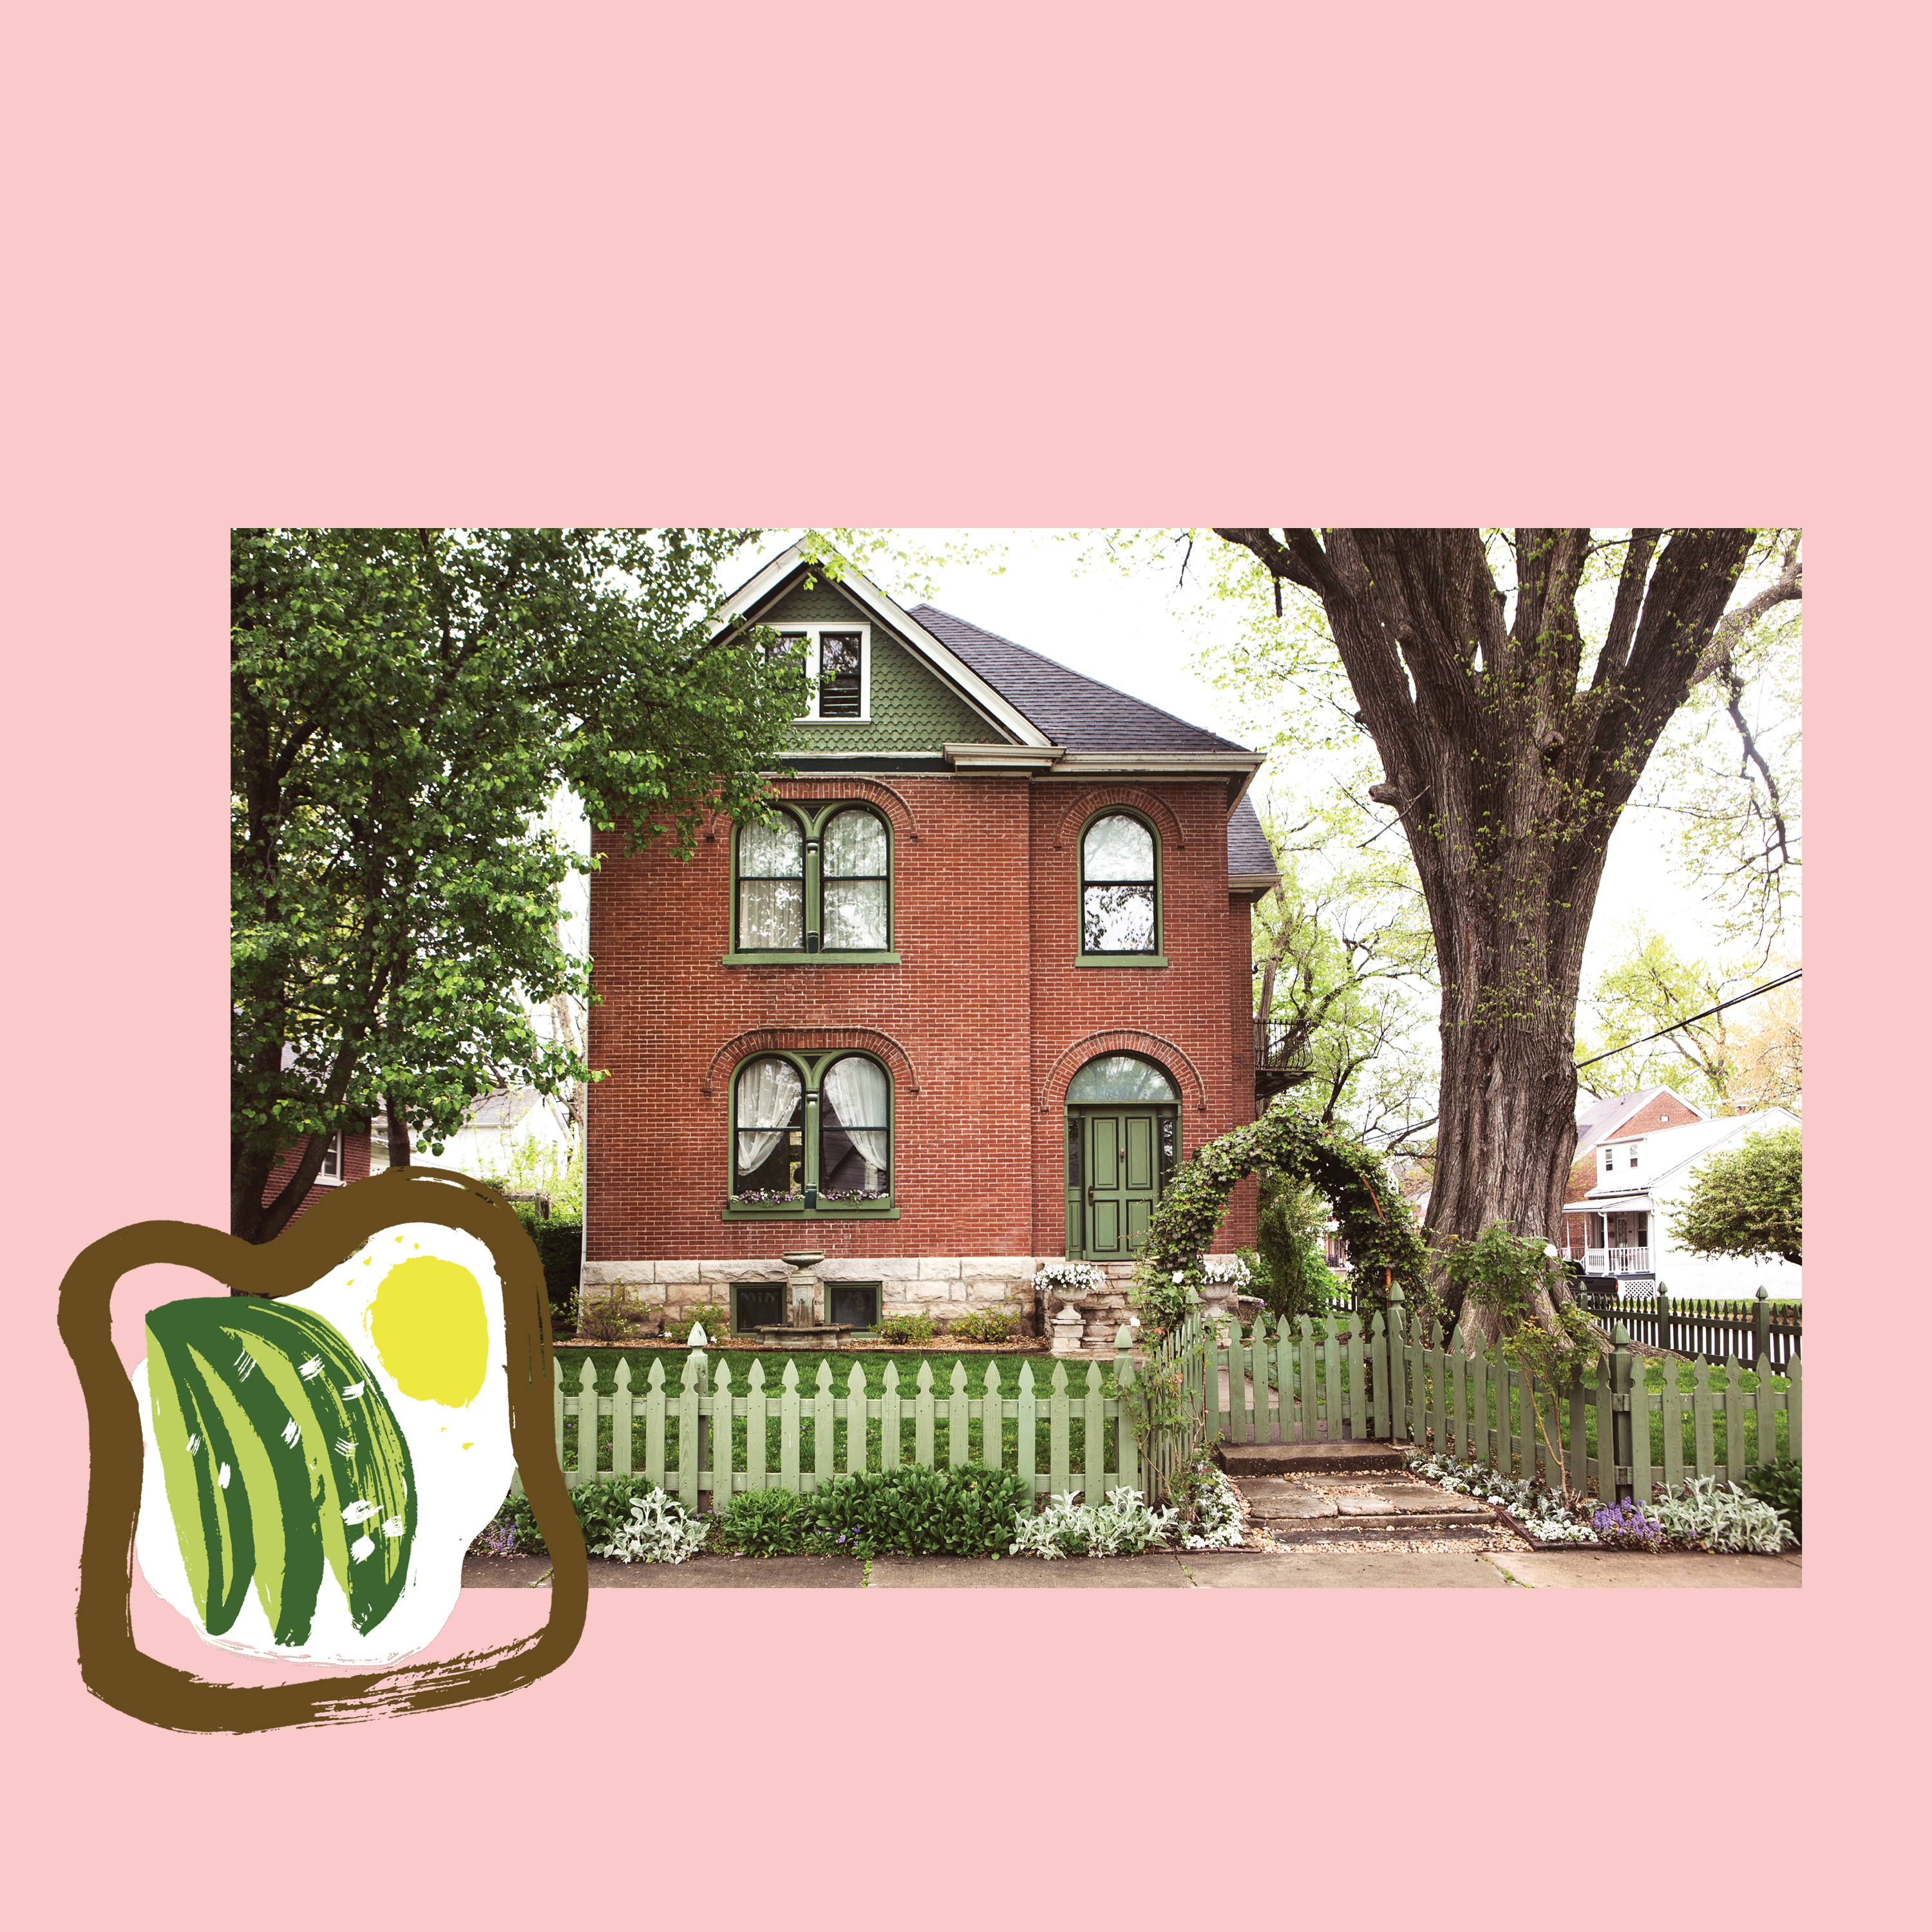 House with avocado toast illustration overlay on a pink background.